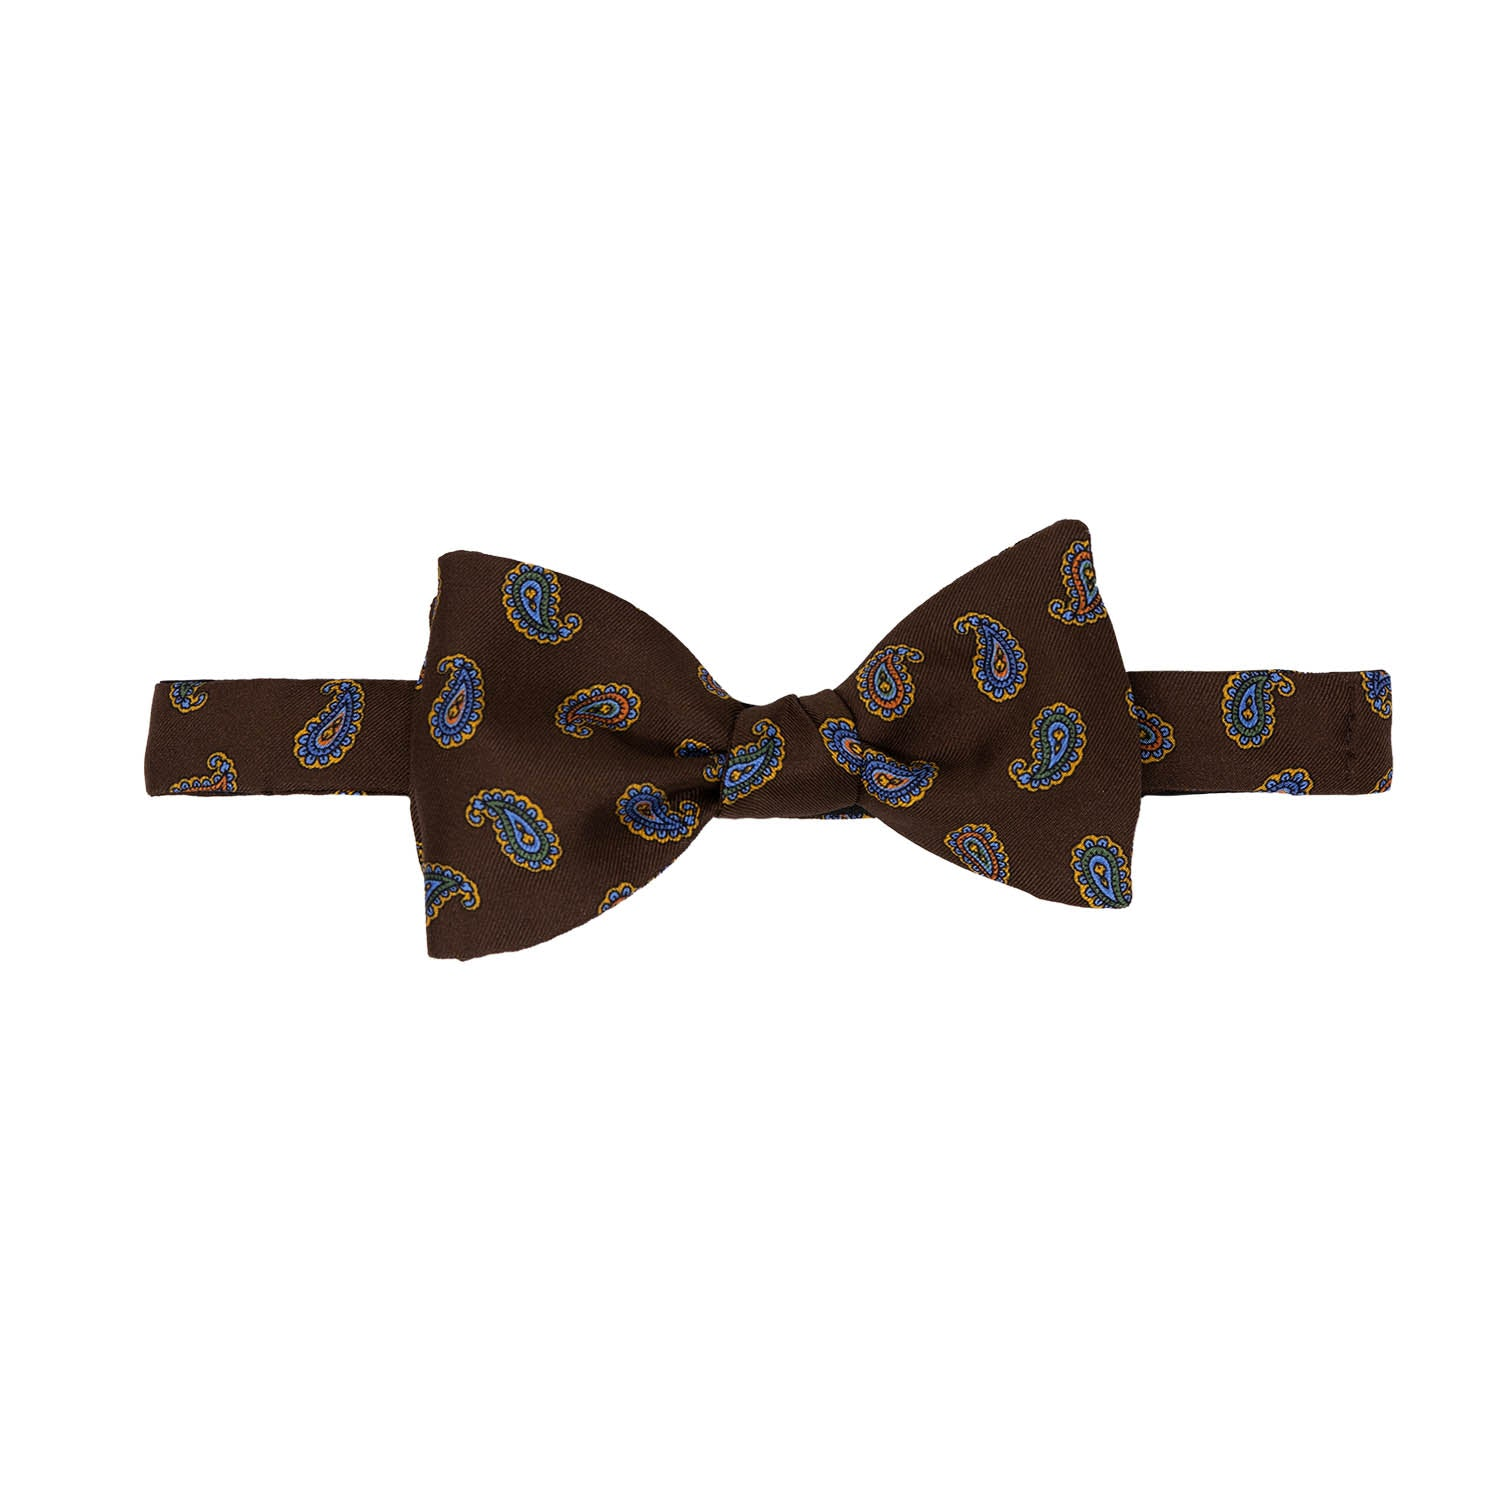 Brown paisley Self-Tie Silk Bow Tie - Serà fine silk